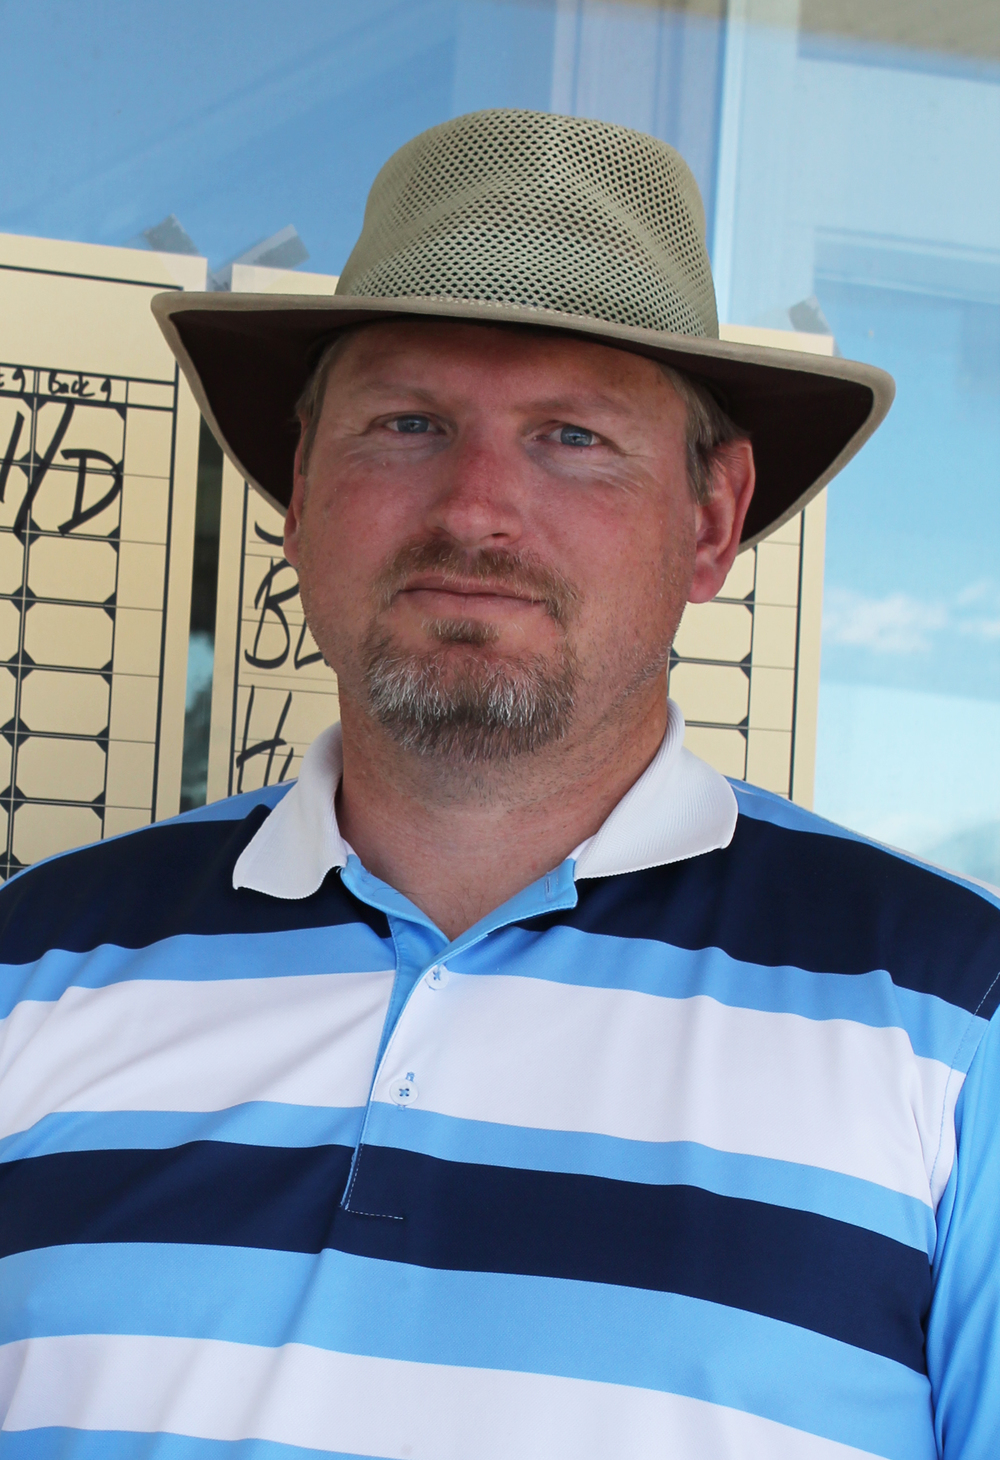 Coach Karl Doller (pictured) and hisGirls Golf Team teamat Timpview High School were part of the Region Twelve Tournament, during which Provo's Naomi Soifua shot her record round of 63. Pick up a copy of this week's edition of The Payson Chronicle for the complete story.